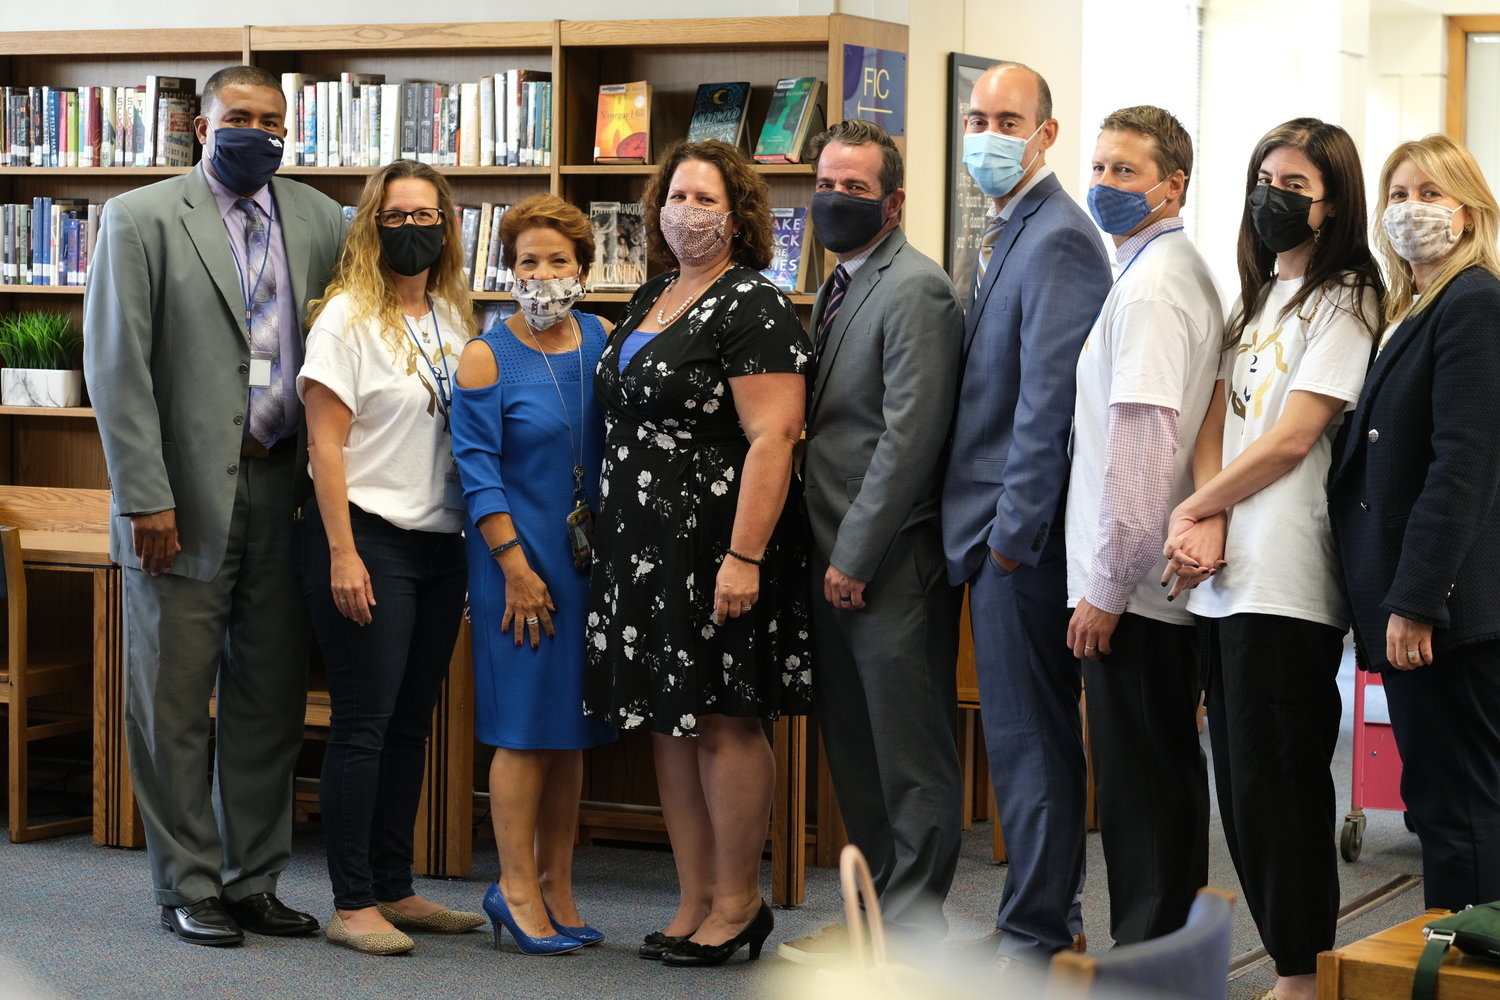 Wolfe, fourth from the left, joined with her colleagues in the high school library on Sept. 14 to celebrate as the state Board of Regents announced the award at a virtual meeting.